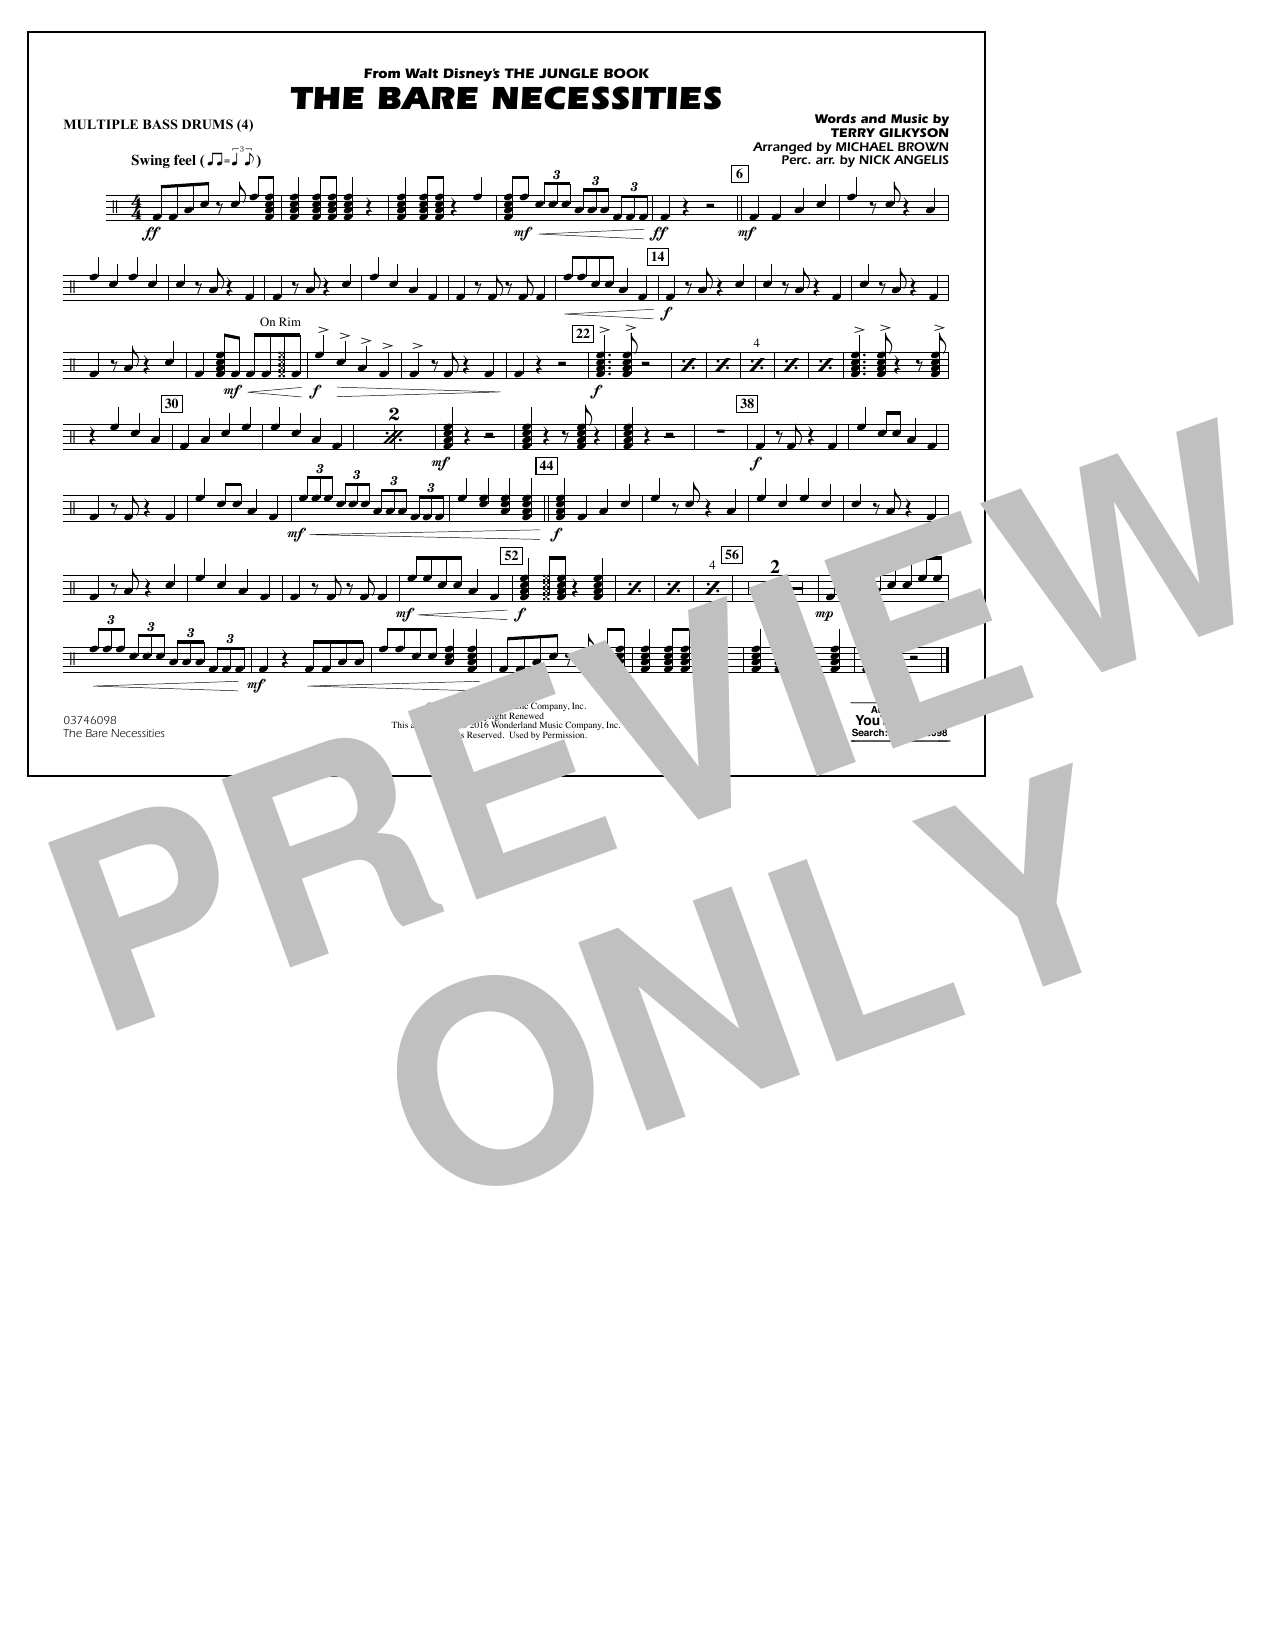 The Bare Necessities (from The Jungle Book) - Multiple Bass Drums Sheet Music